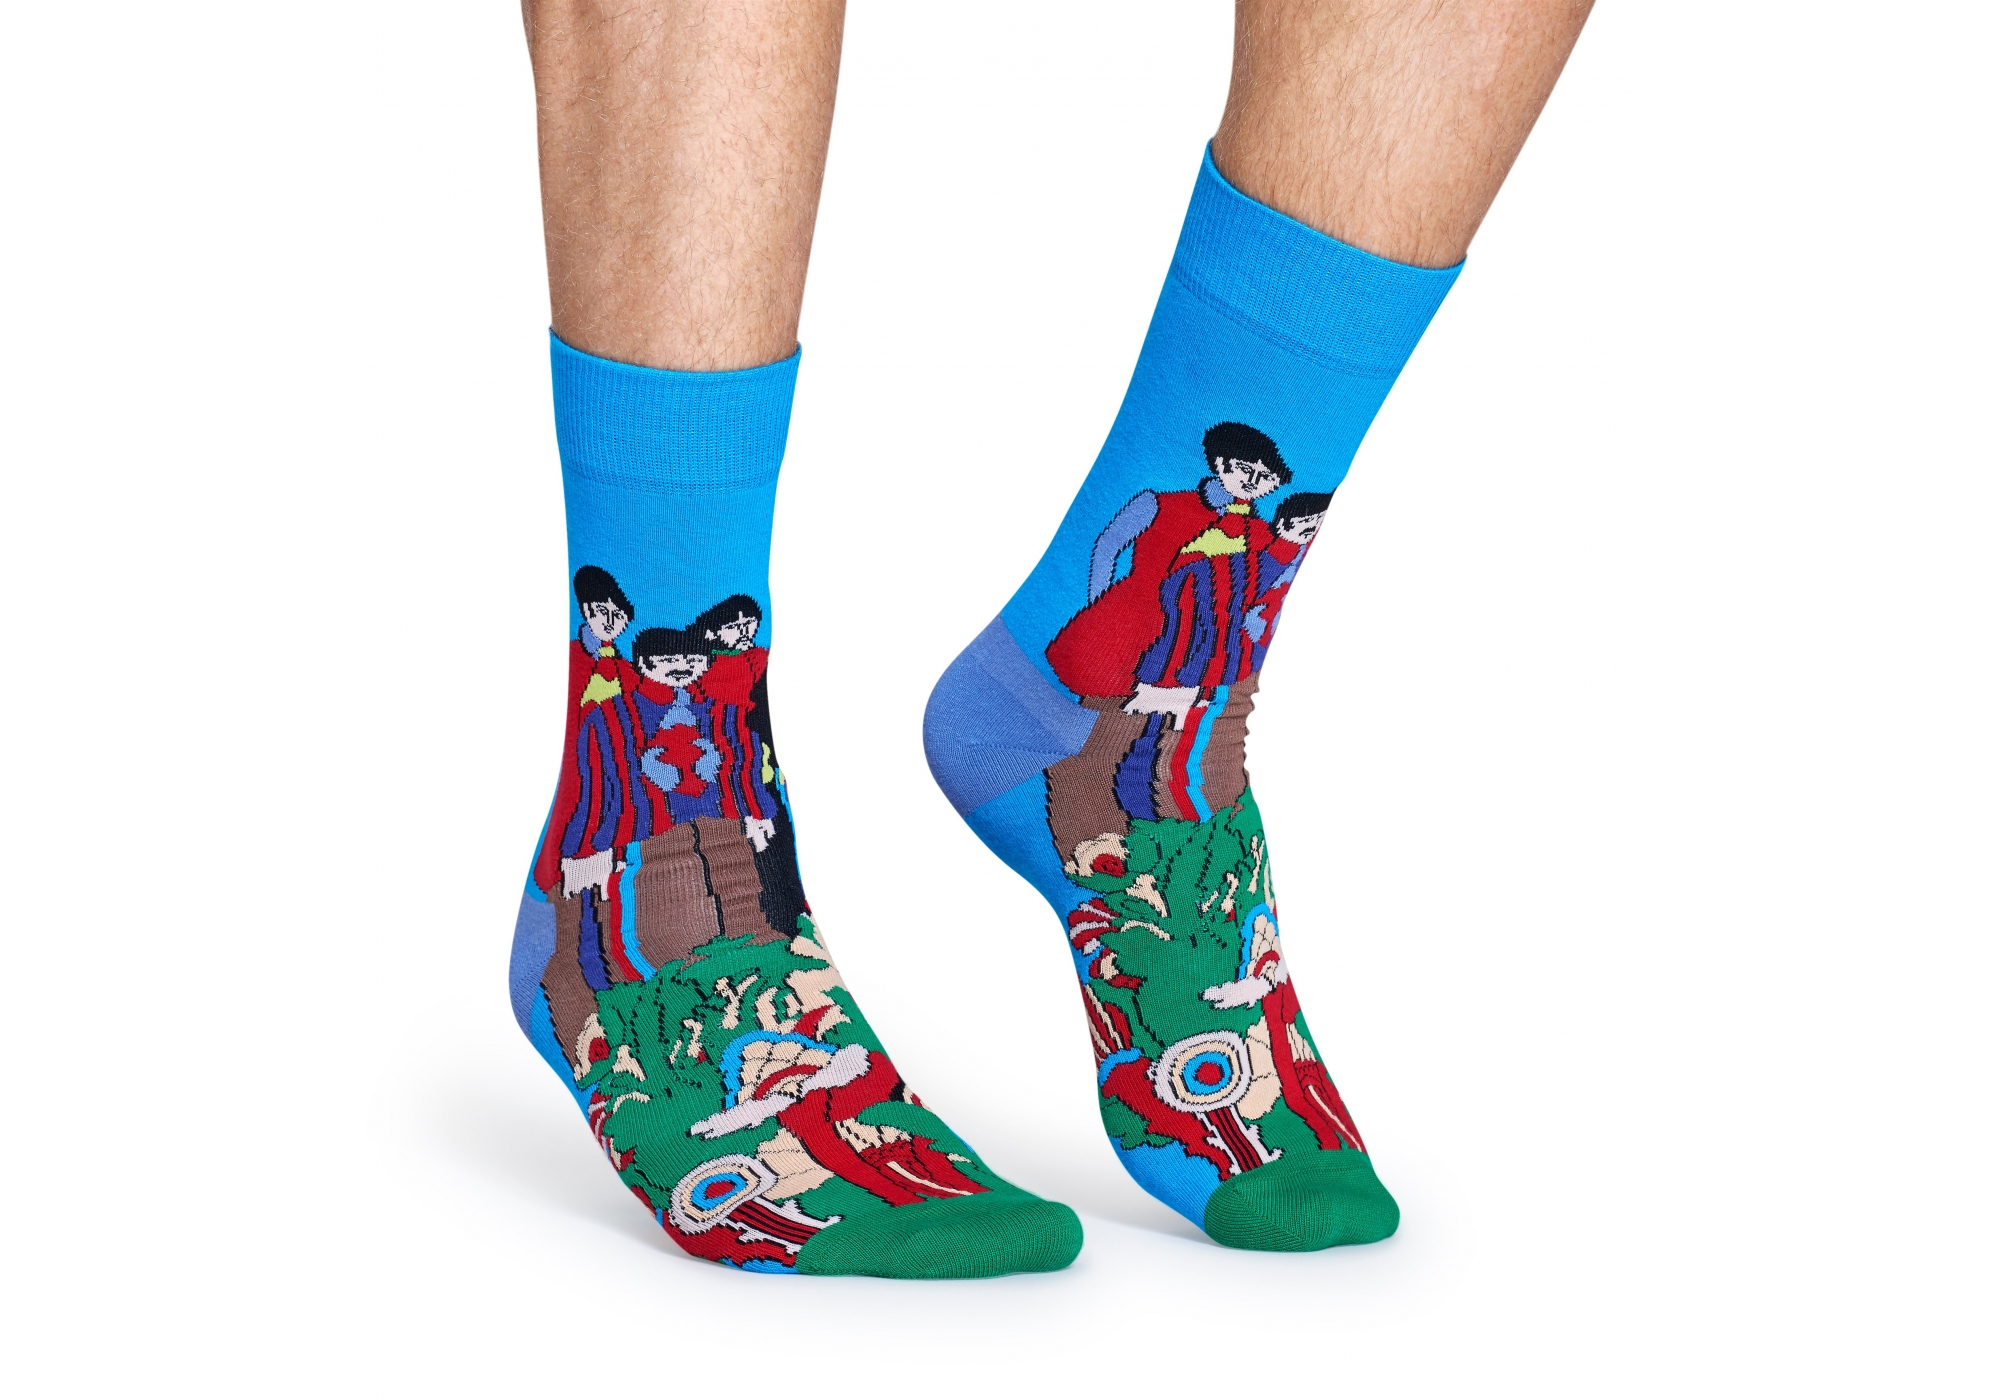 Barevné ponožky Happy Socks se vzorem Pepperland x The Beatles 1554919857